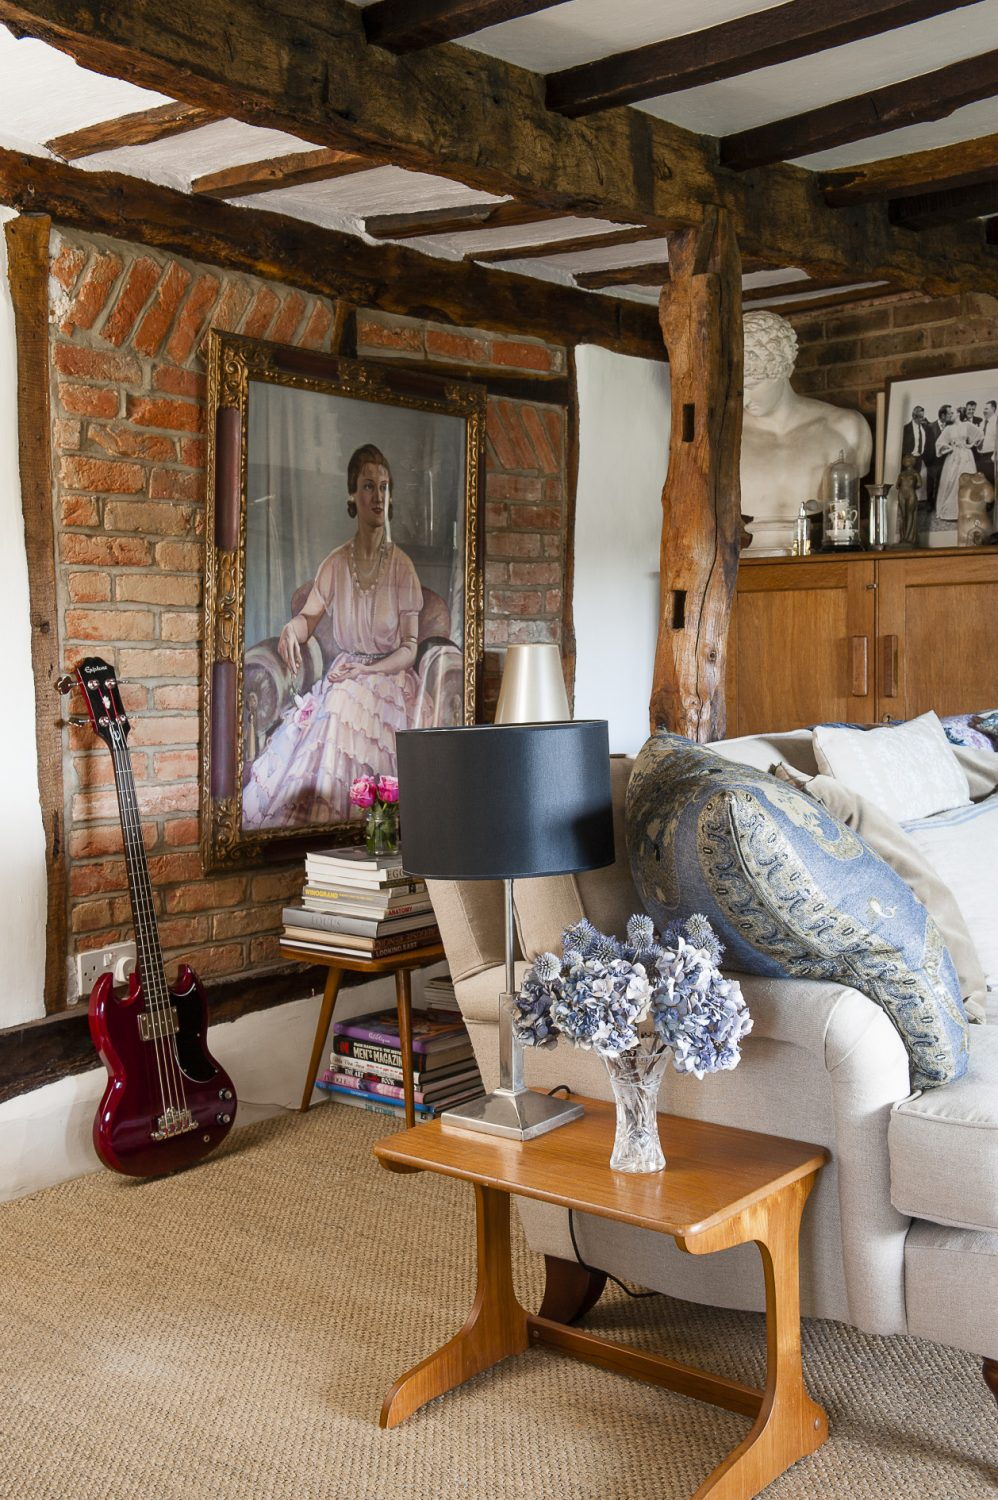 Roni's cottage is filled with lovely pieces of art which date from the 1920s through to the 1950s. Her favourite is a large formal 1936 portrait of an aristocratic lady in pink that virtually covers one of the sitting room walls that Roni bought from Roy Massingham in Westerham